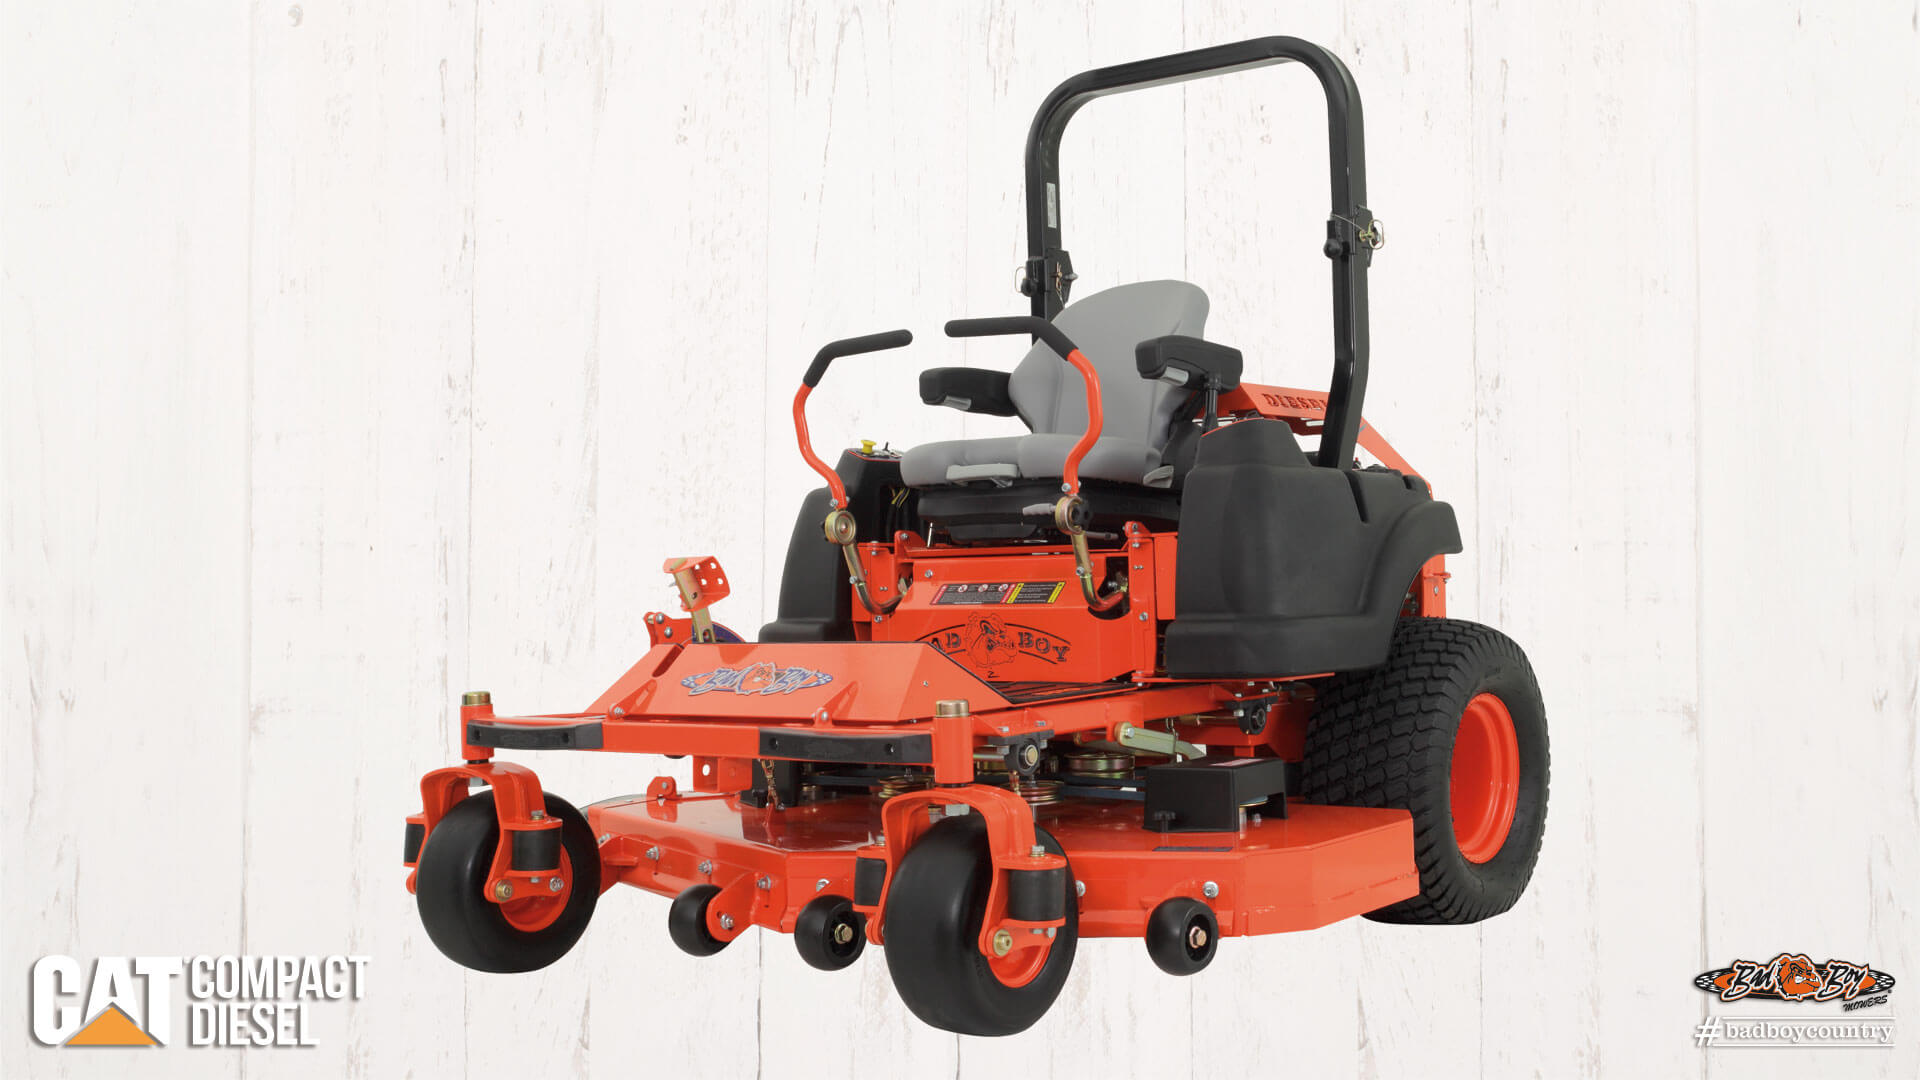 Lawn Mower Diesel : New bad boy mowers compact diesel lawn in